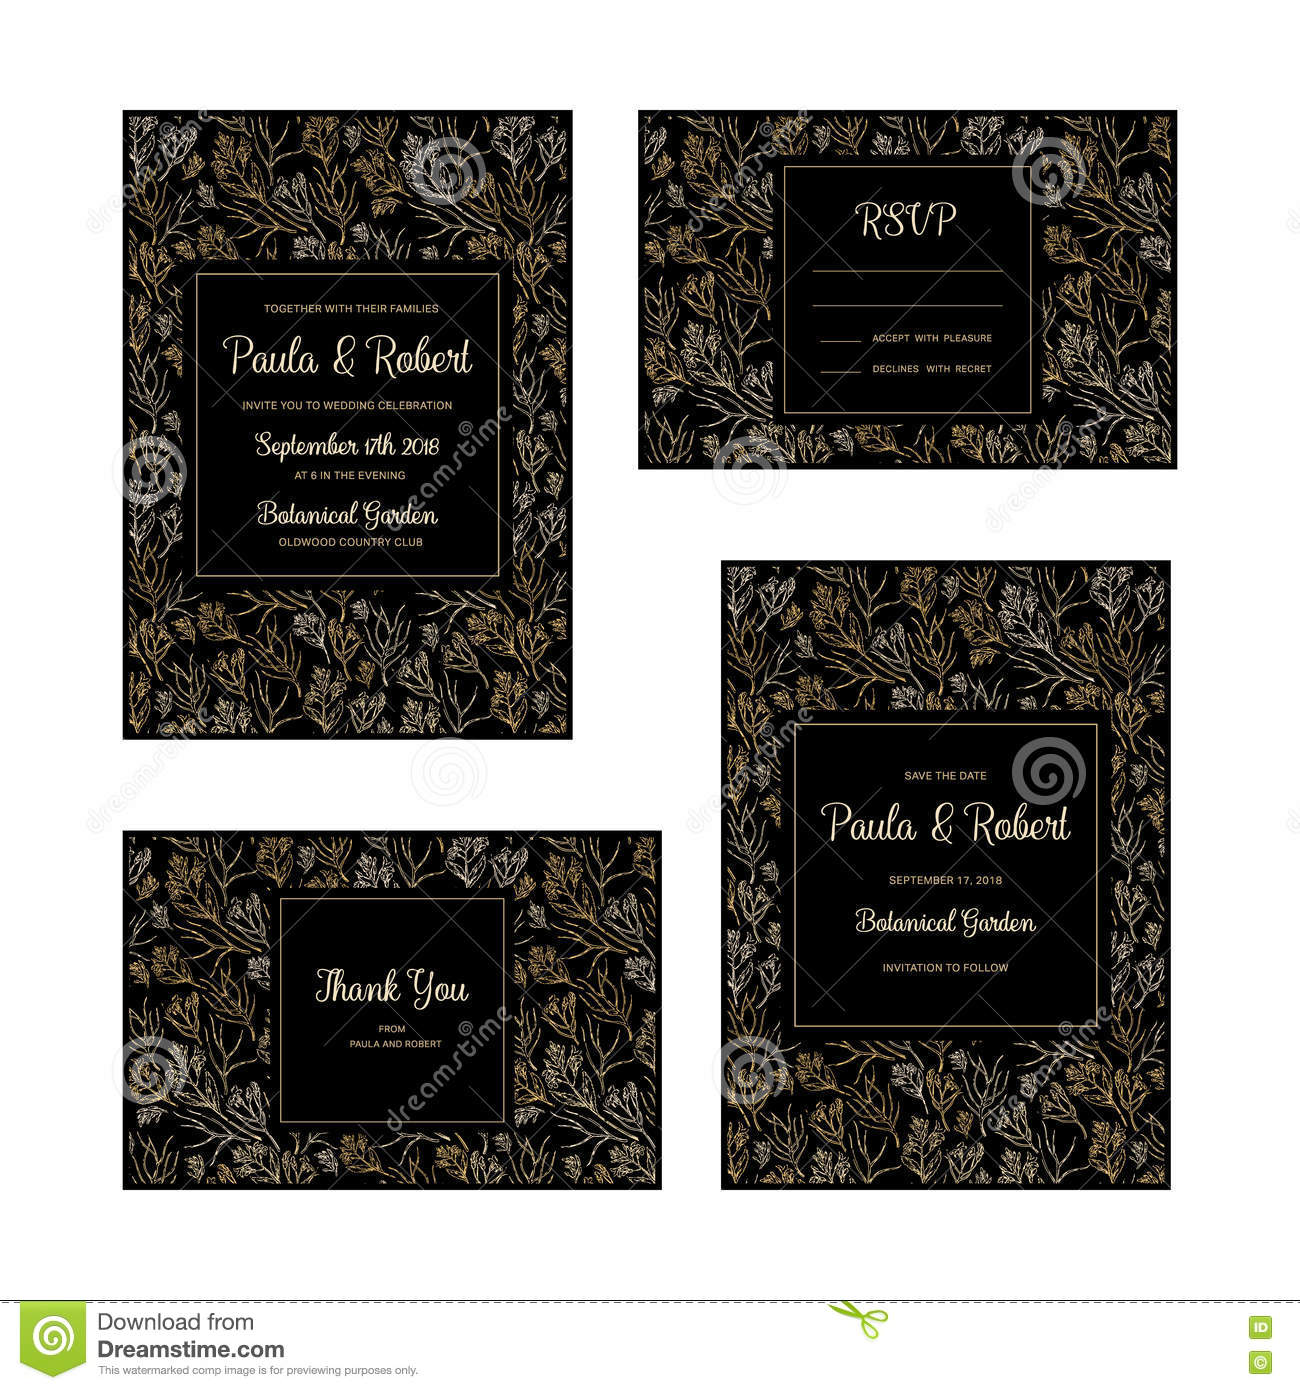 Wedding invitations set stock vector illustration of announcement wedding invitation gold card set vector invitation save the date rsvp reception thank you card template with floral background on white backdrop stopboris Image collections